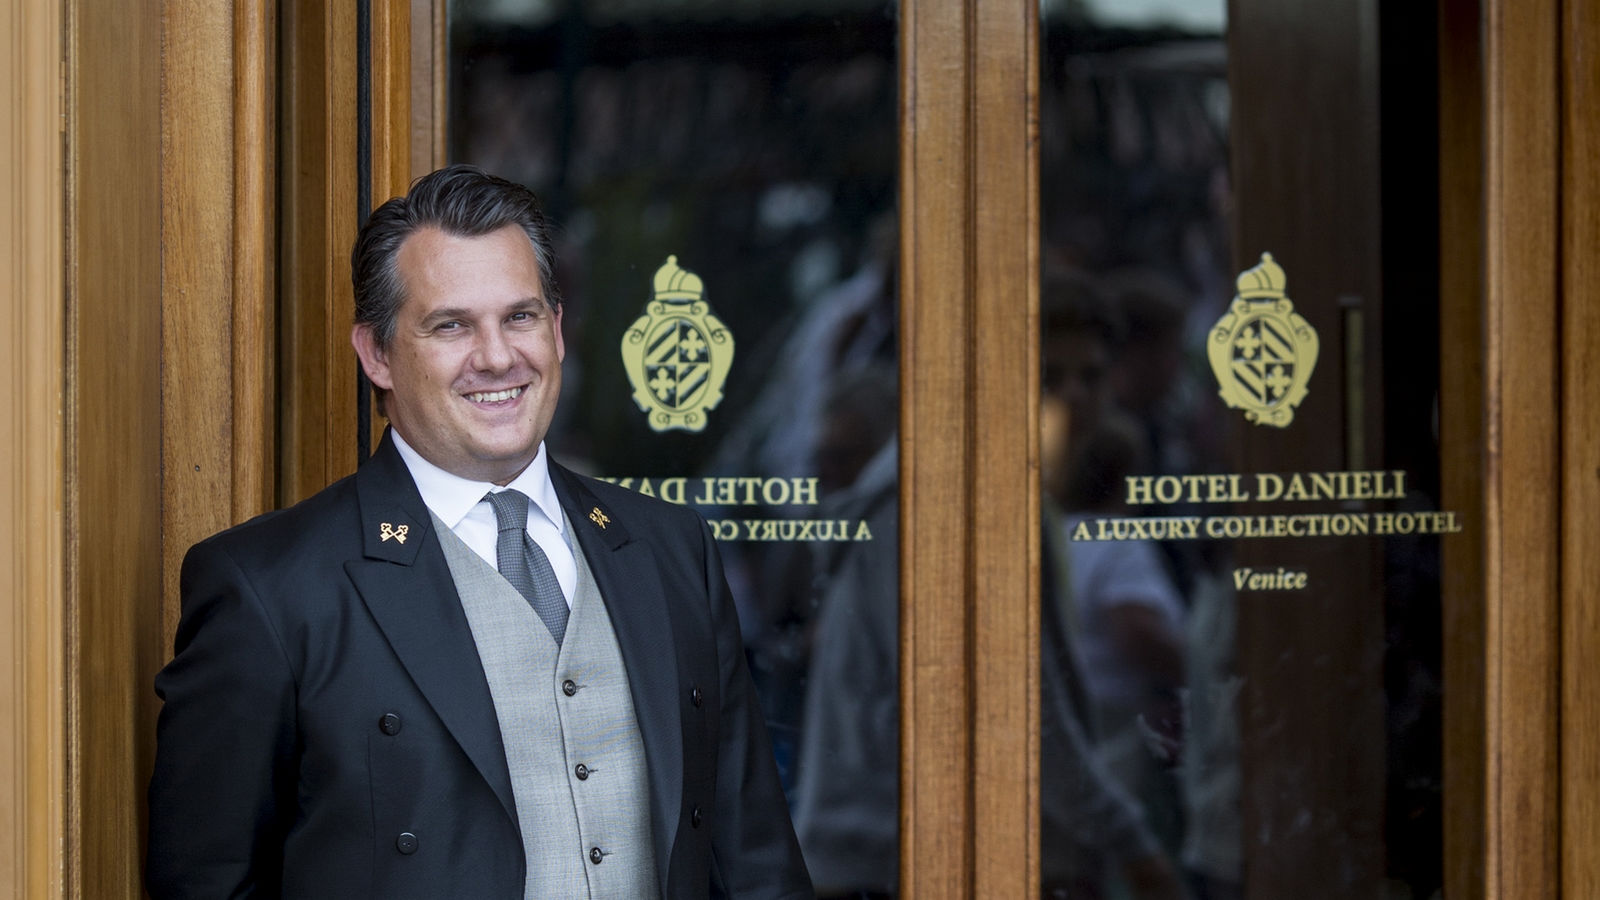 Filippo Bollani Head Concierge at Hotel Danieli